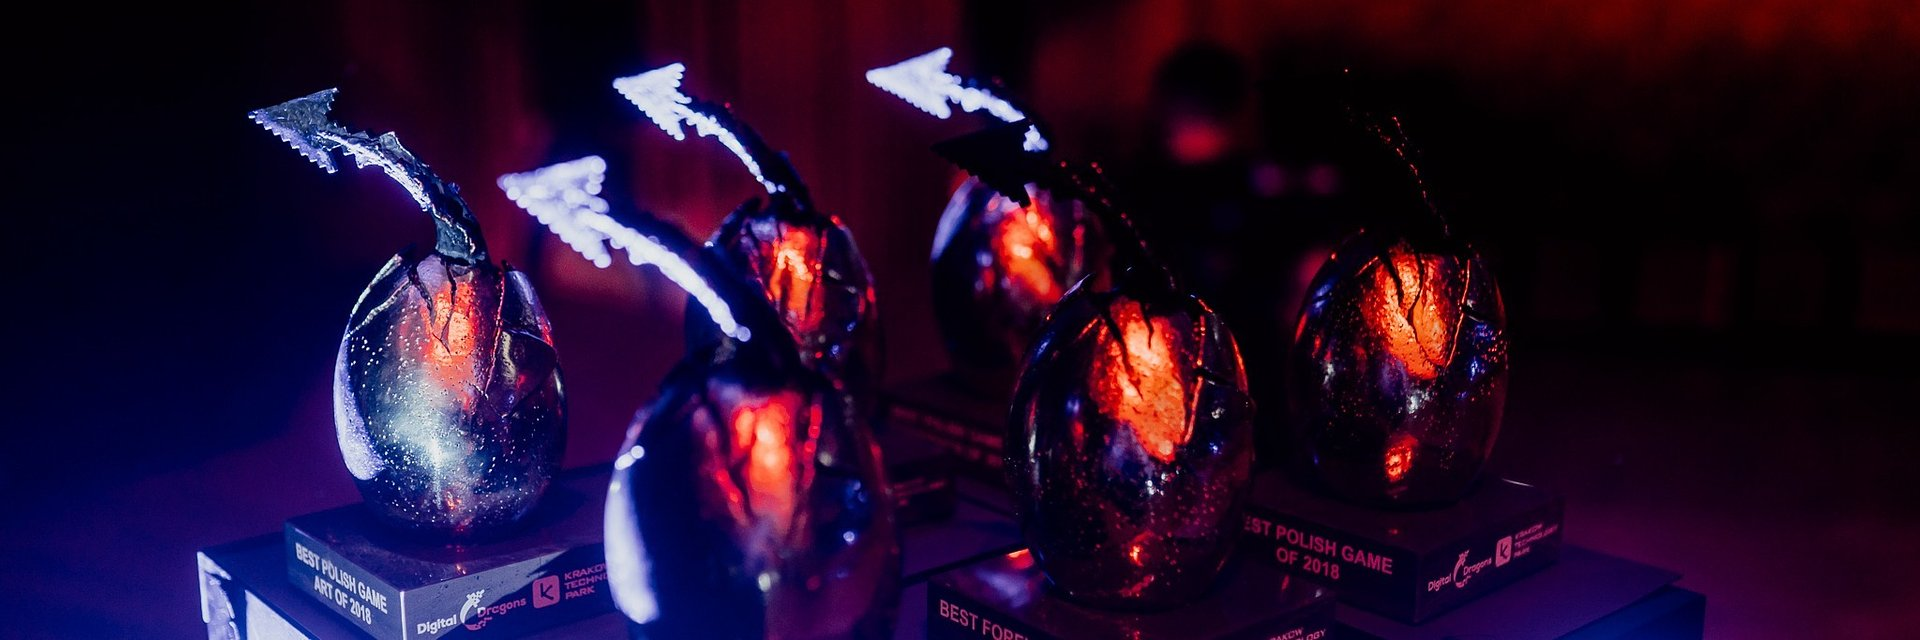 Four nominations for 112 Operator, Shing! and Ghostrunner, three for Cyberpunk 2077 and Carrion - this year's Digital Dragons Awards are in for a tough competition